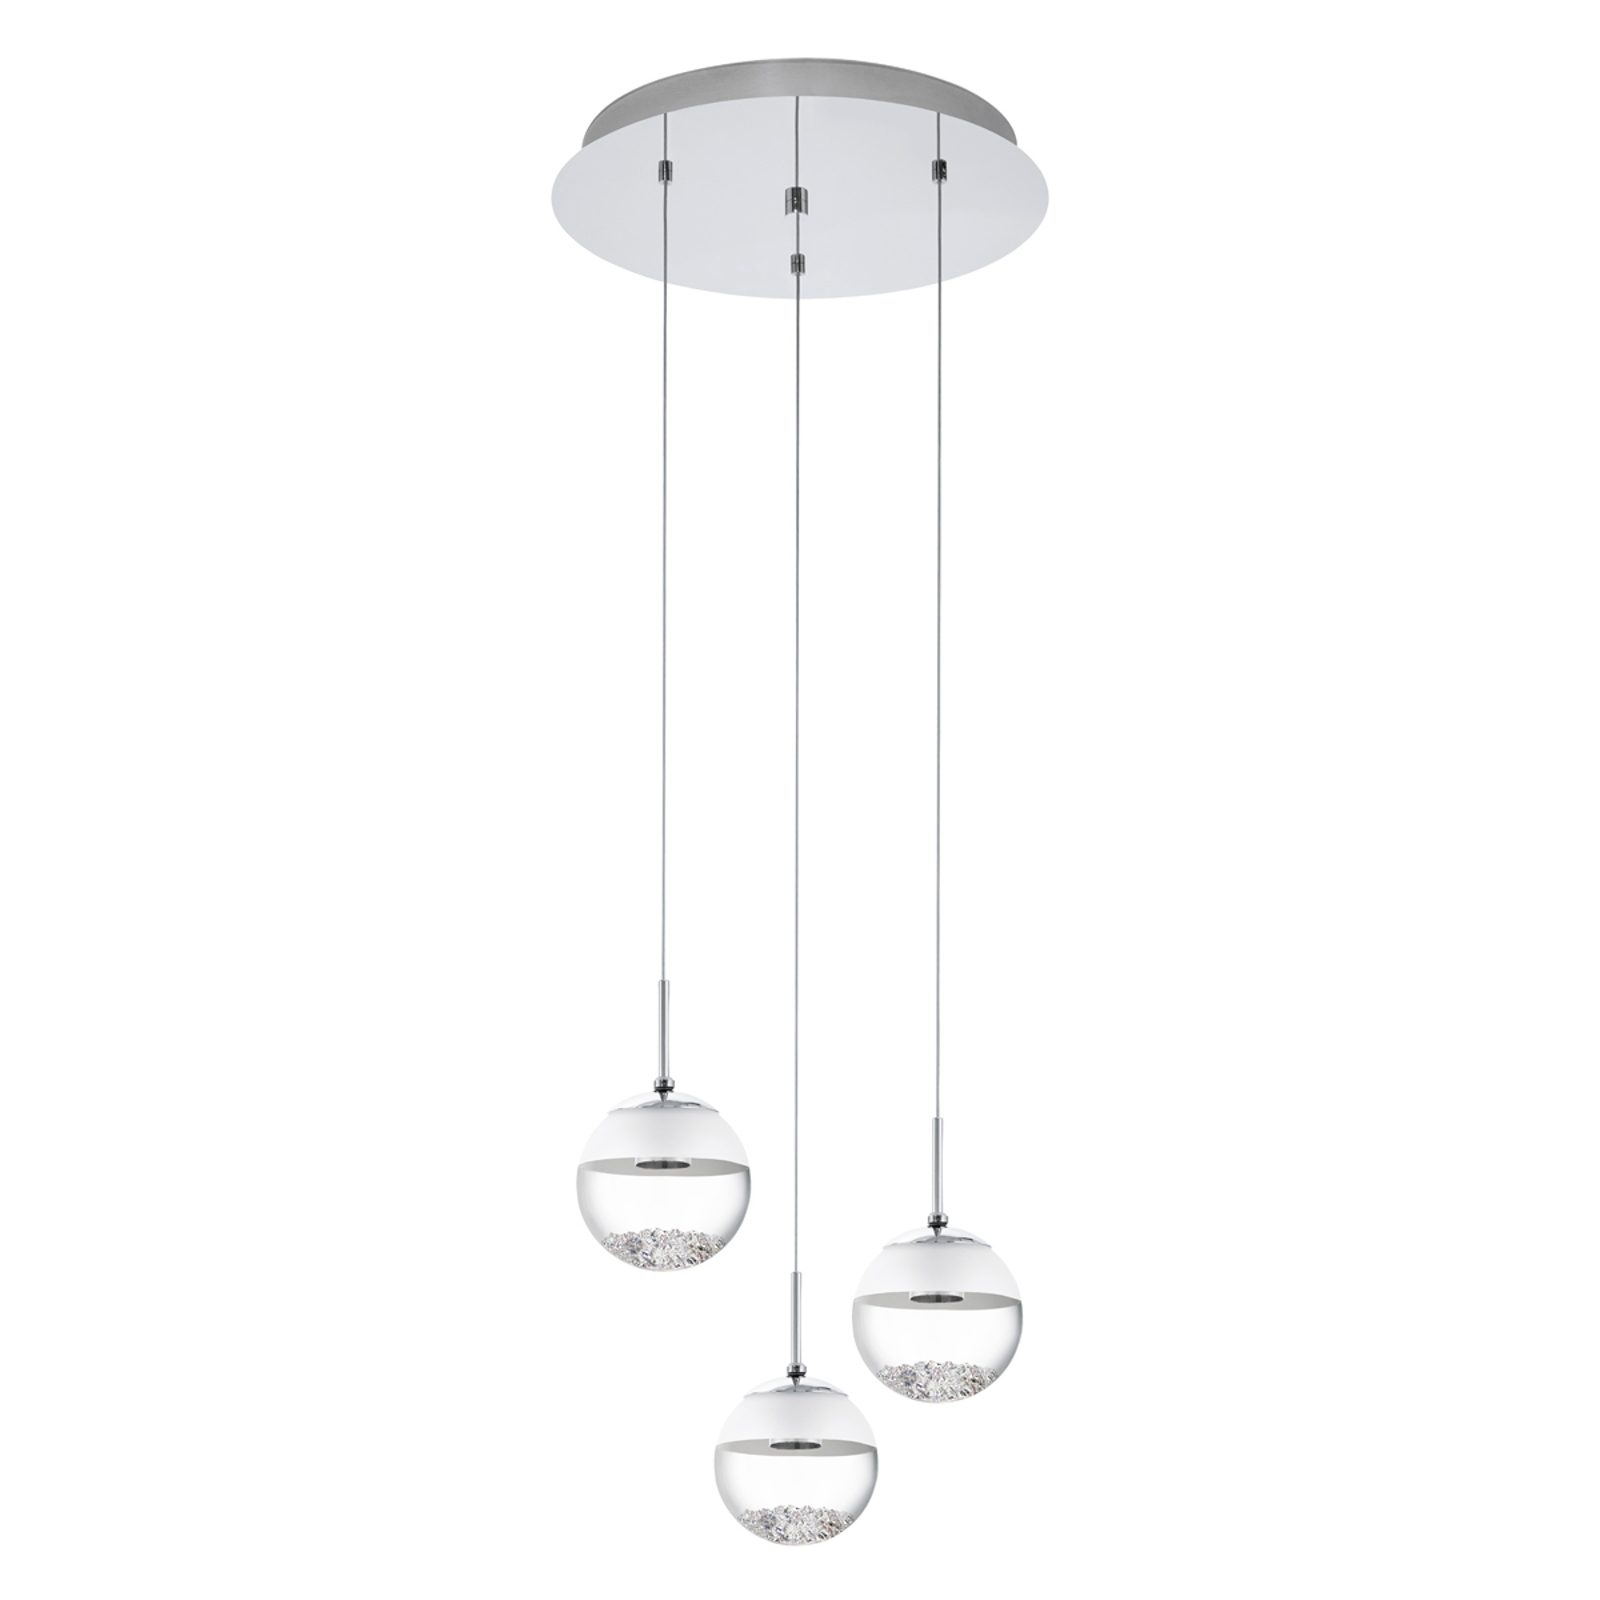 Suspension LED Montefio cristal 3 flammes